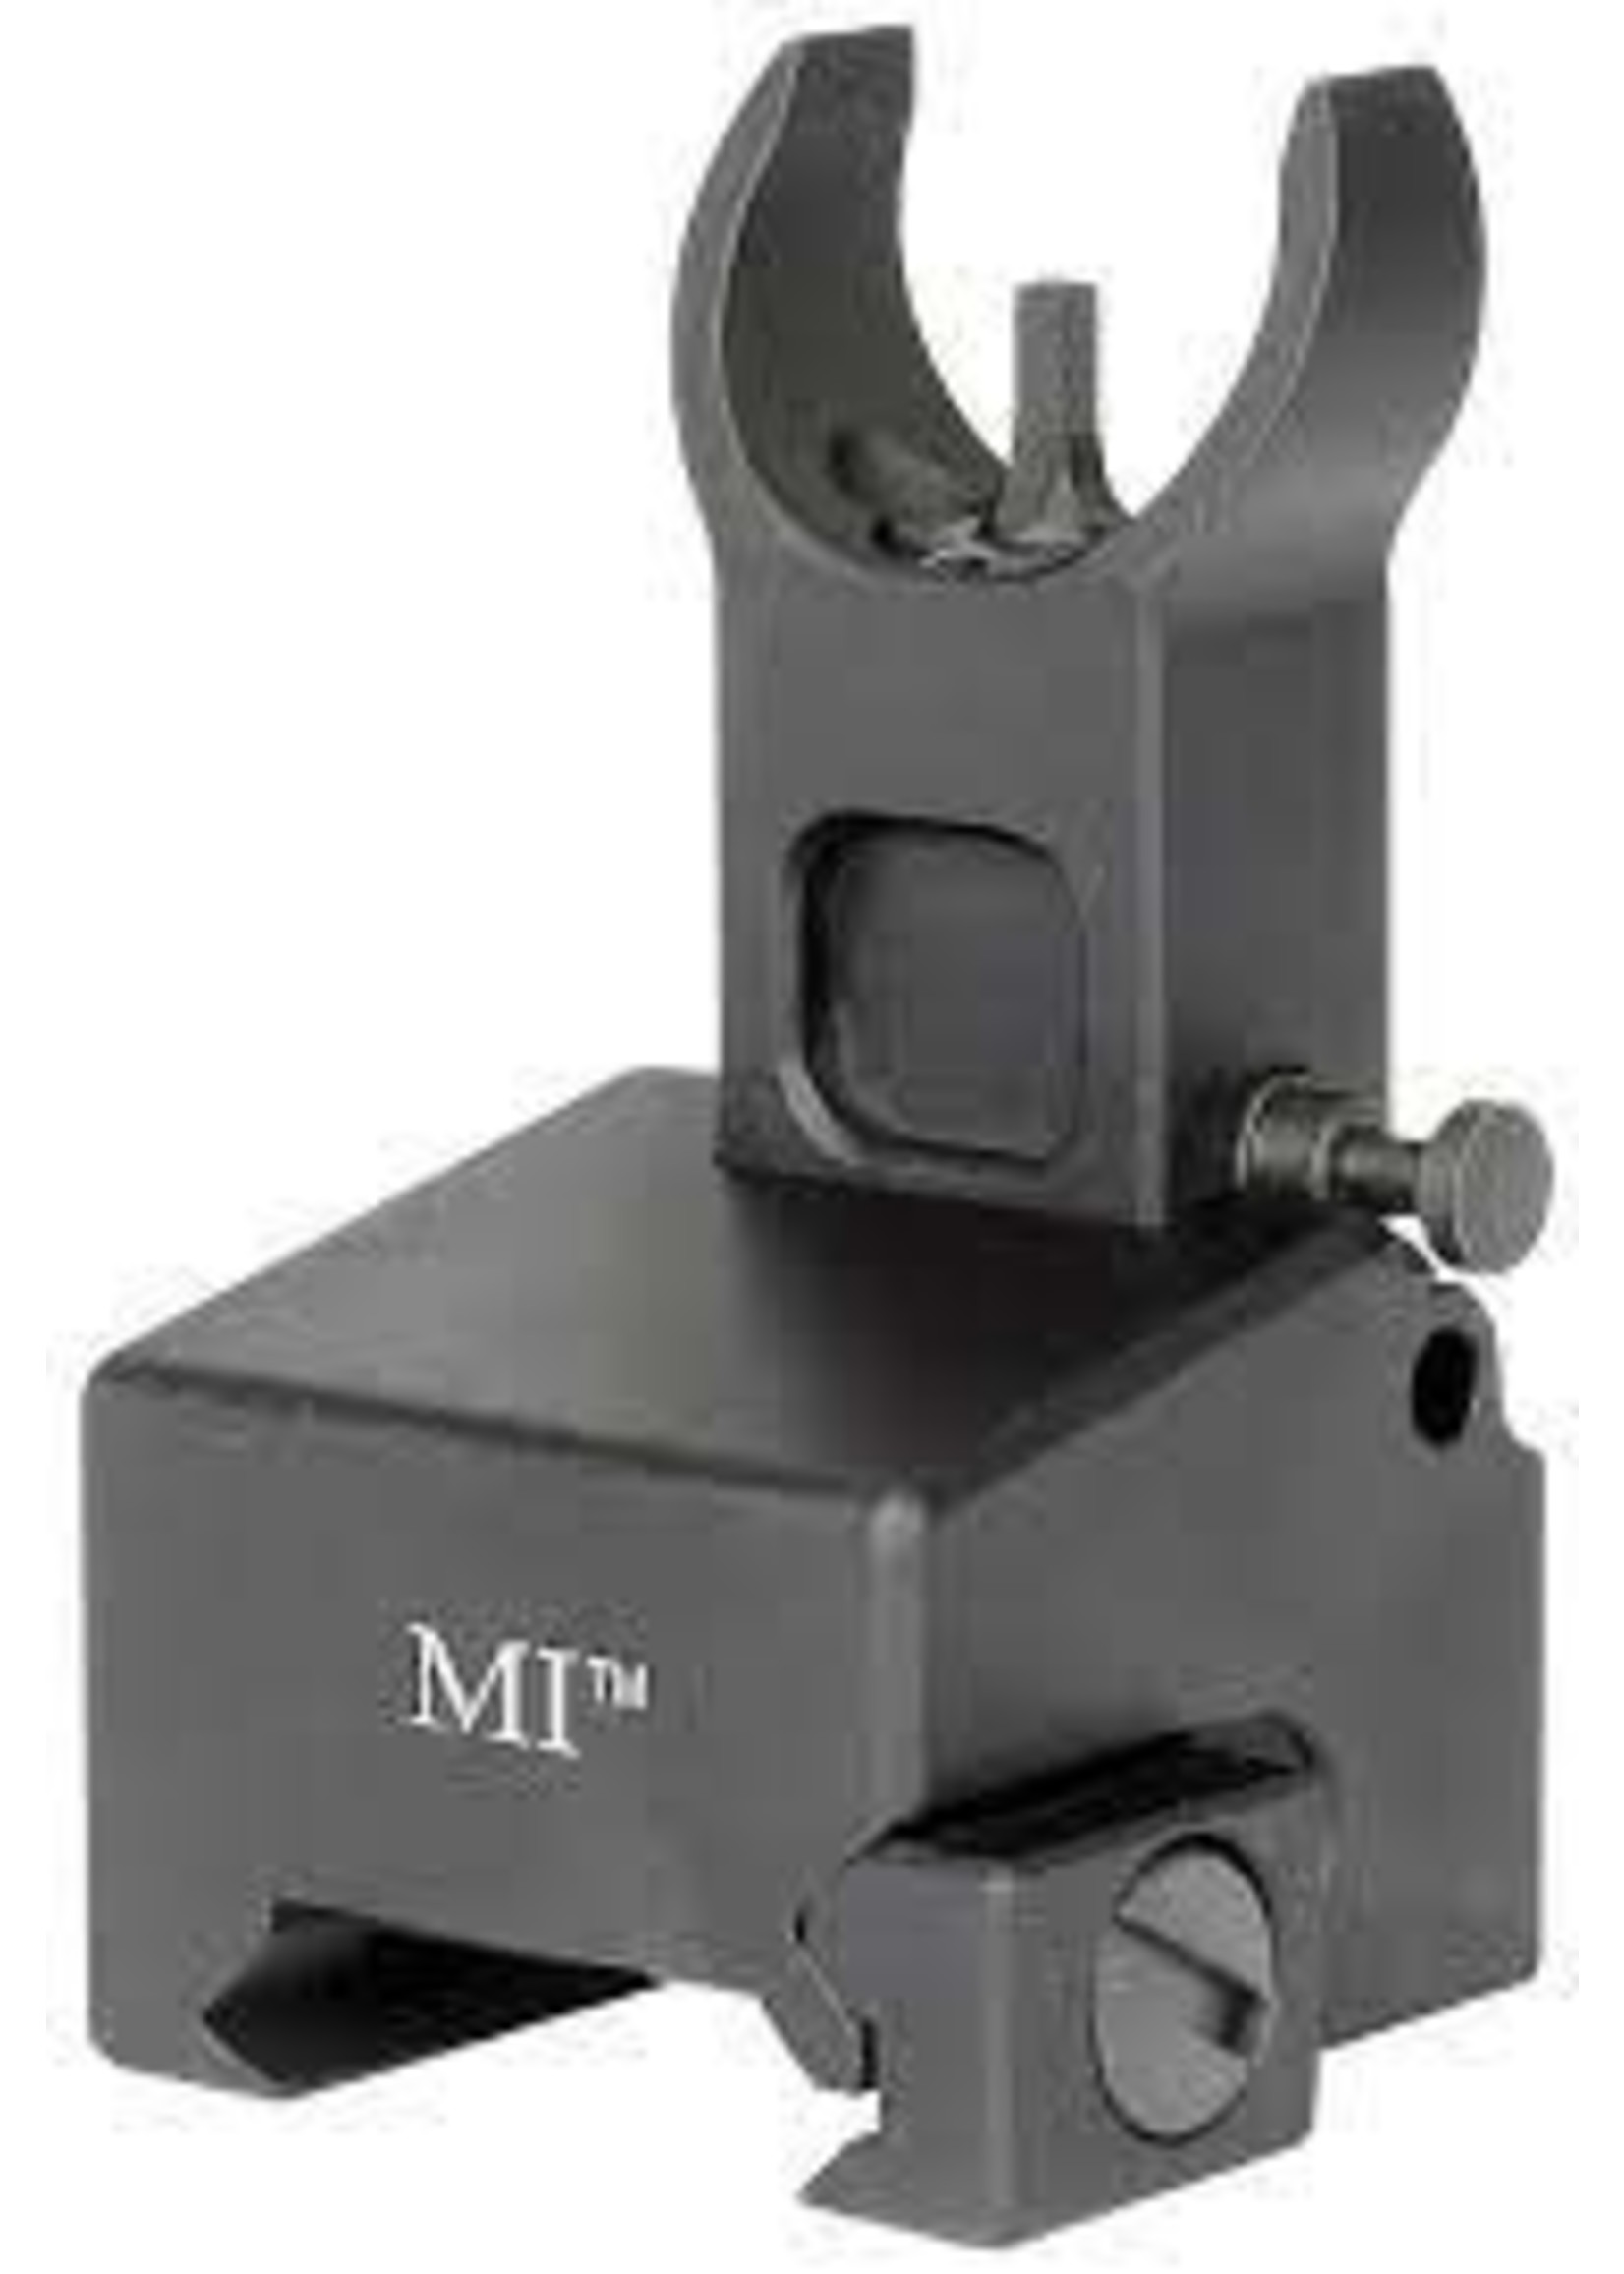 MIDWEST MIDWEST LOW PRO FRNT SIGHT LOCKING